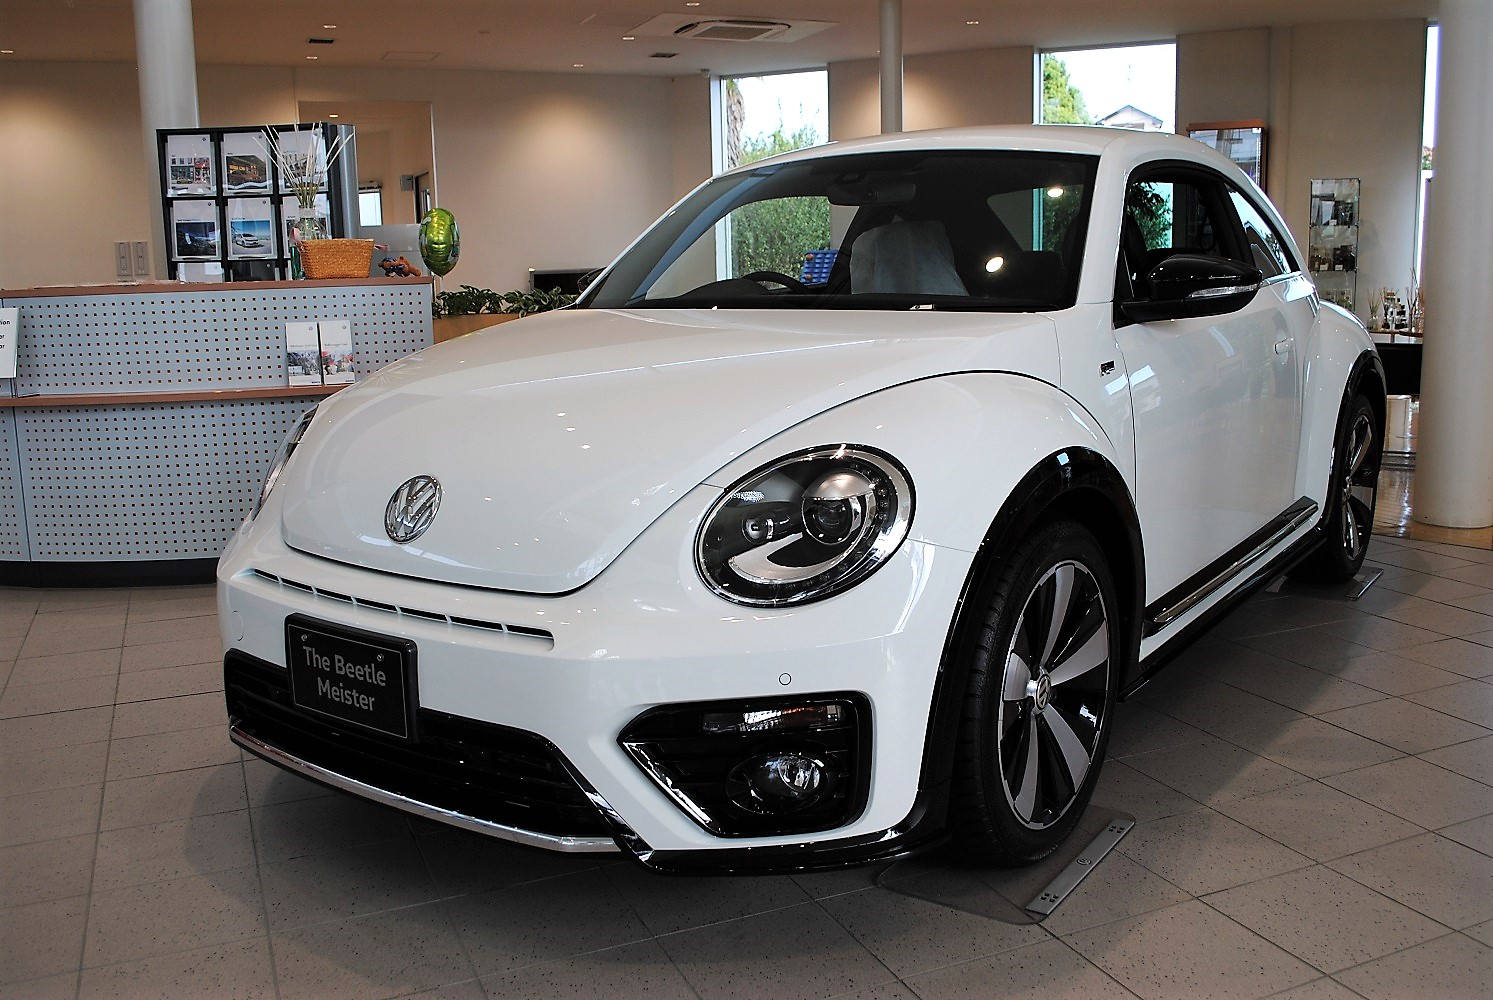 The Beetle R-Line  Meisterの画像1